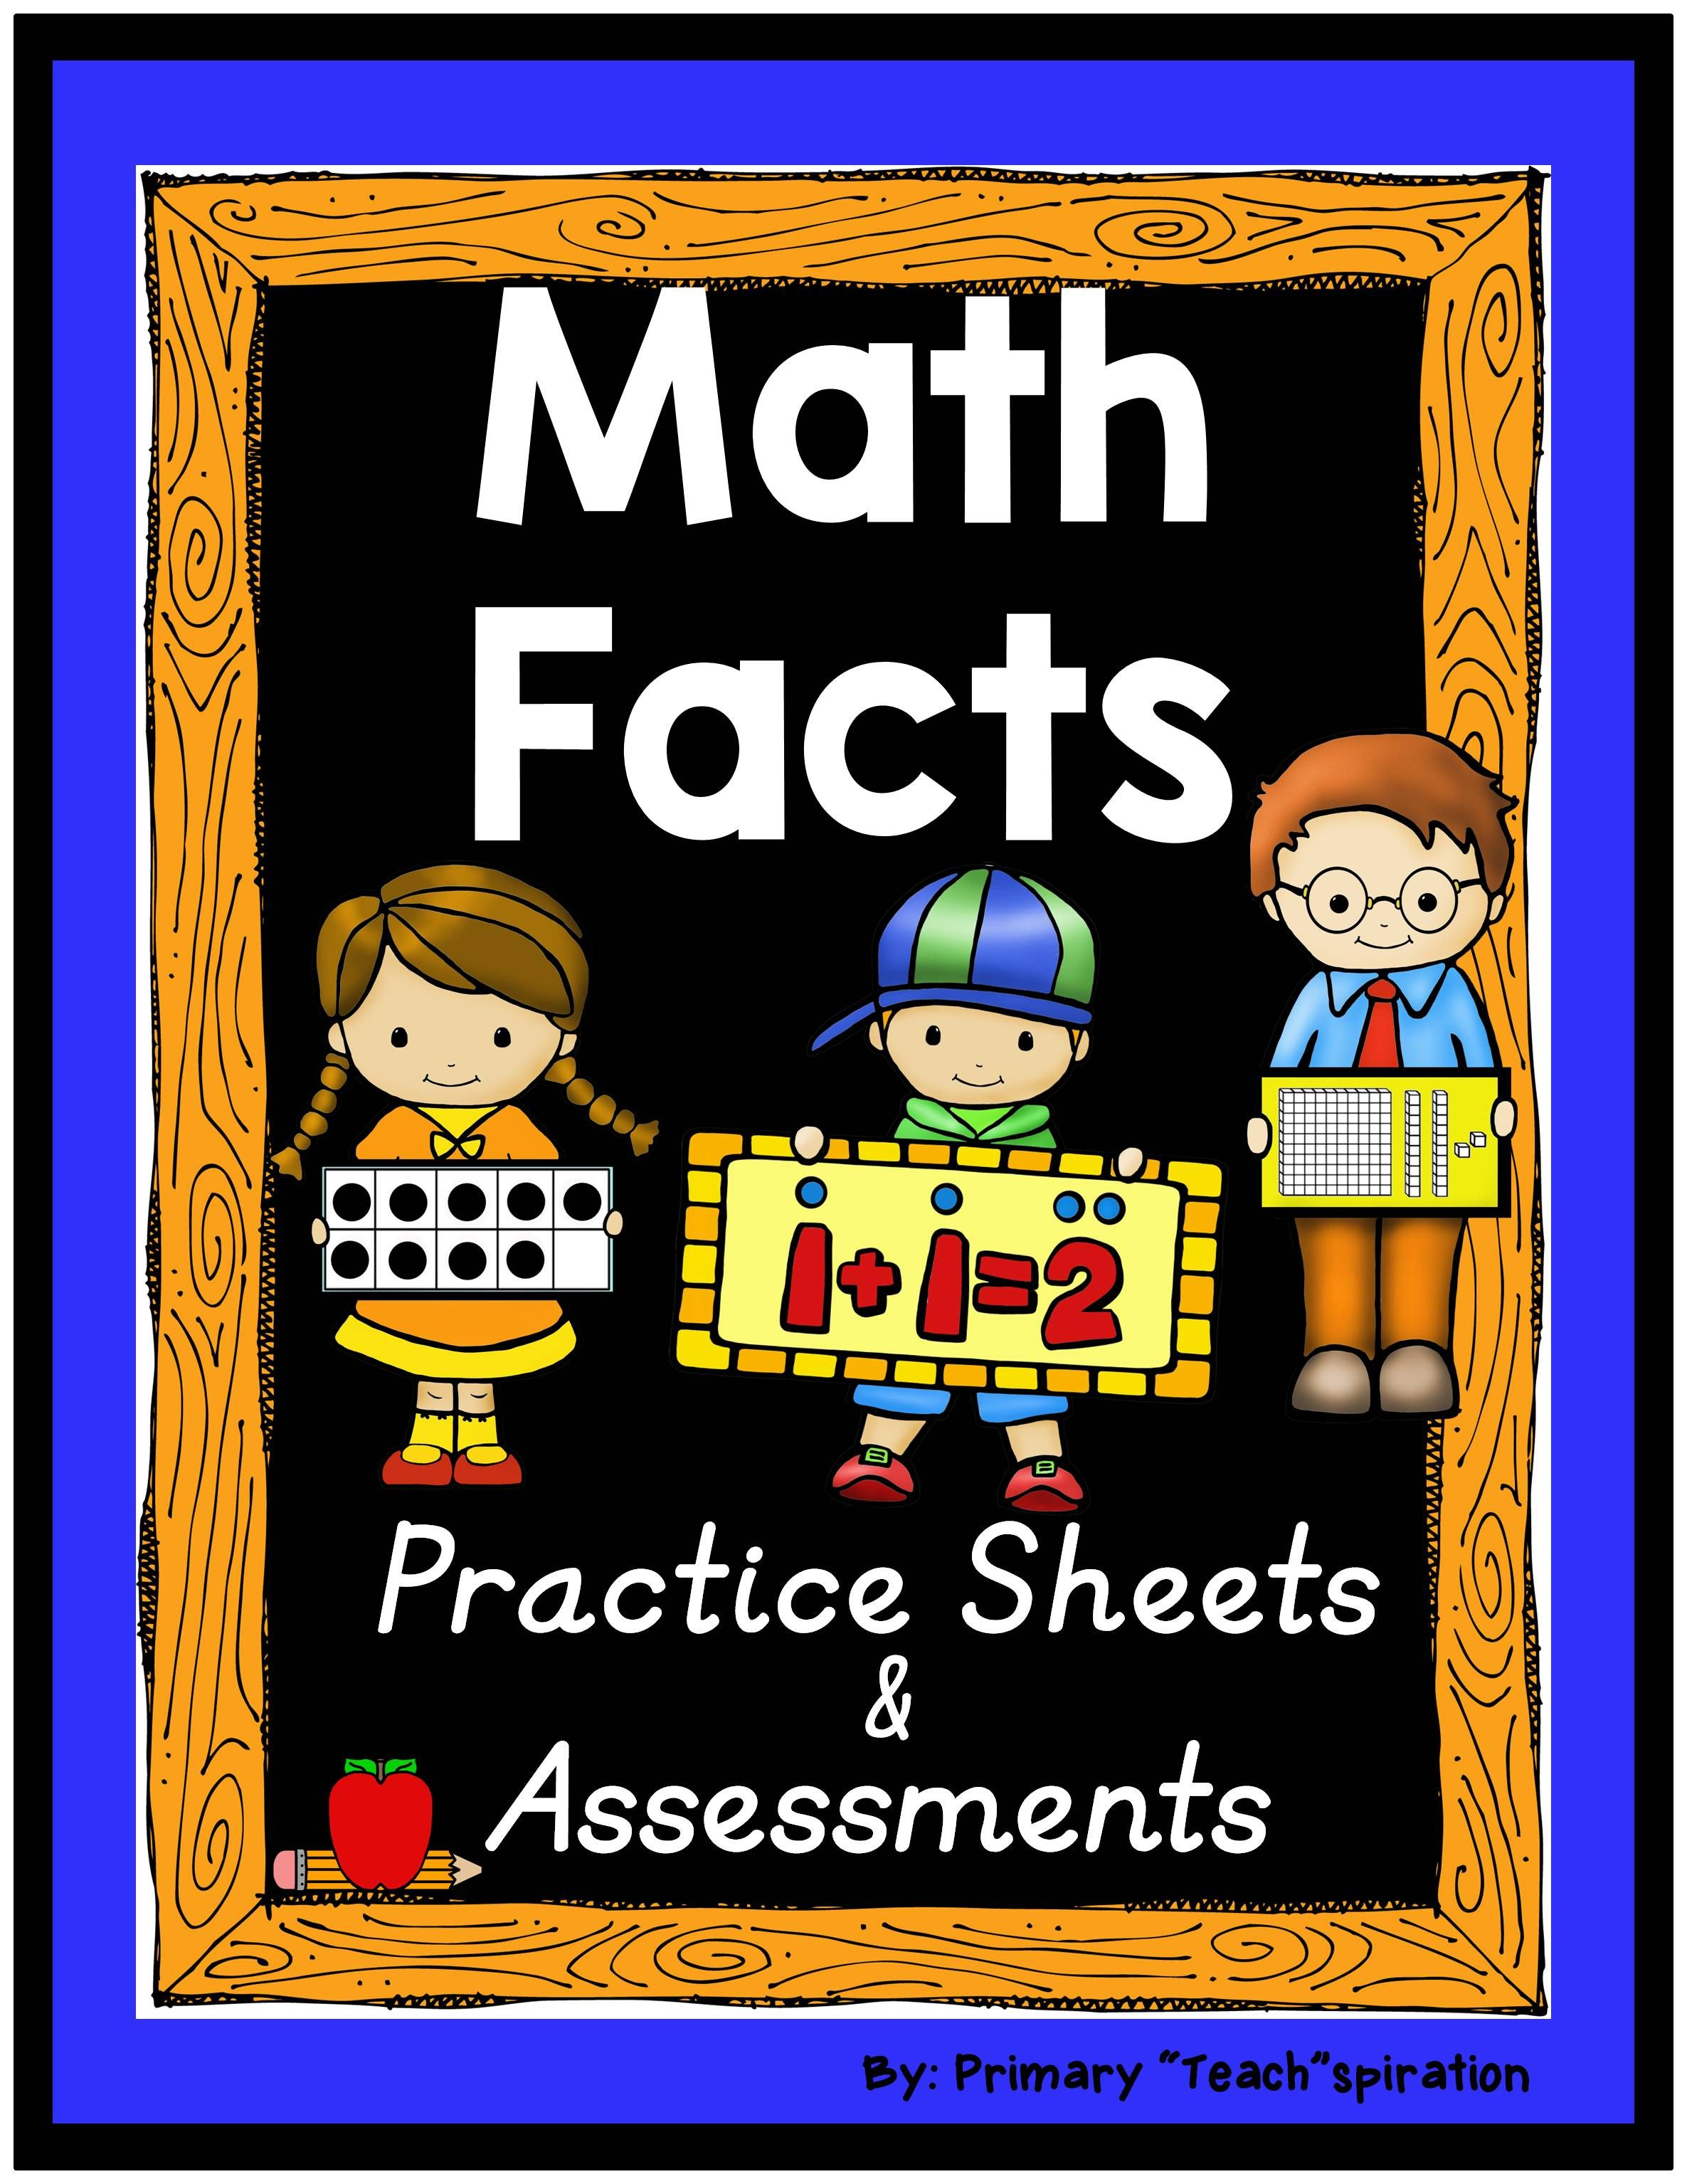 Math Facts Practice Worksheets And Assessments